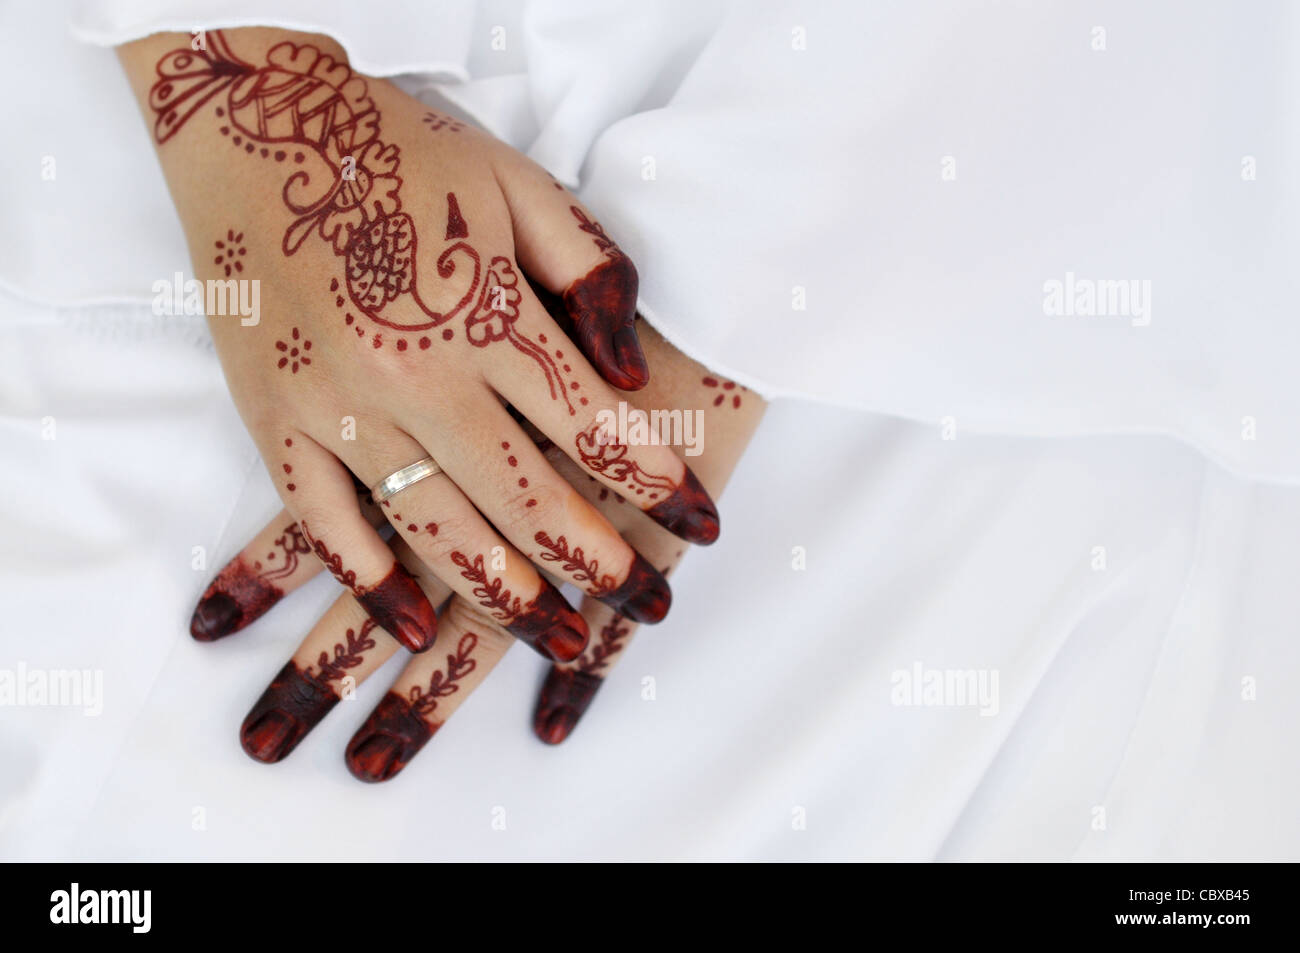 Malay Bride And The Henna Artwork On Her Hands Stock Photo Alamy